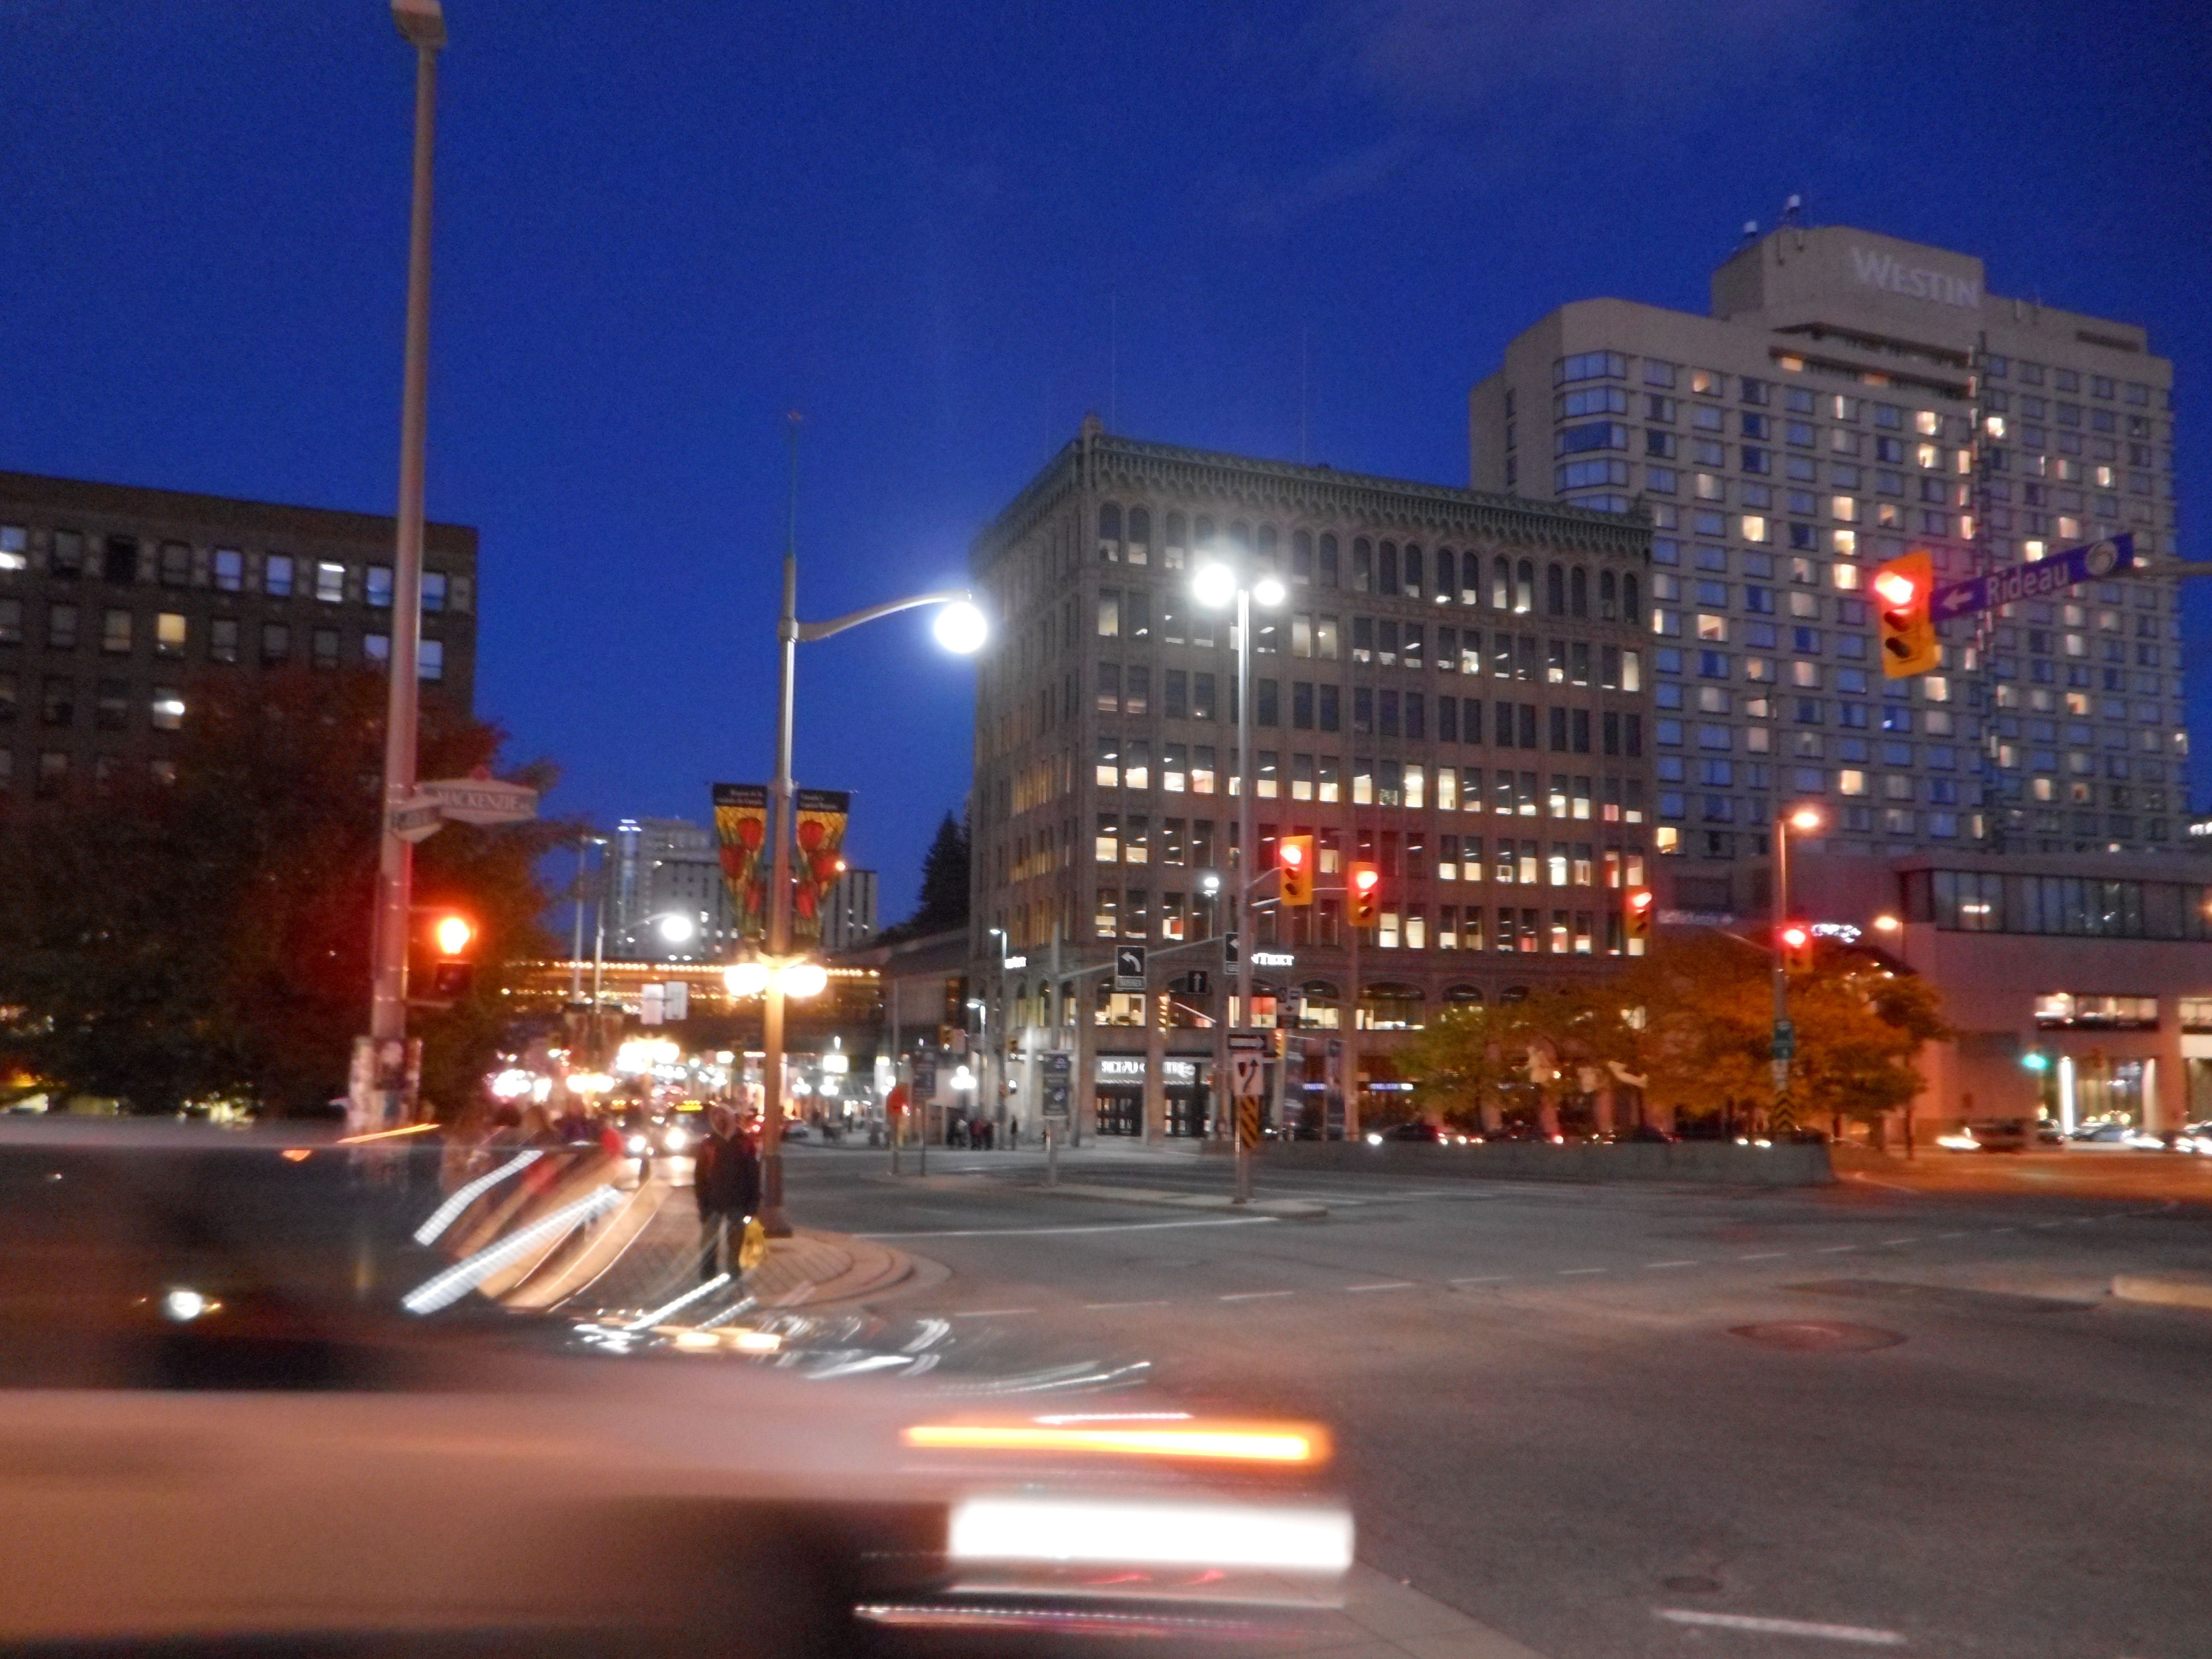 One of the main streets of Ottawa at dusk. Canada travel